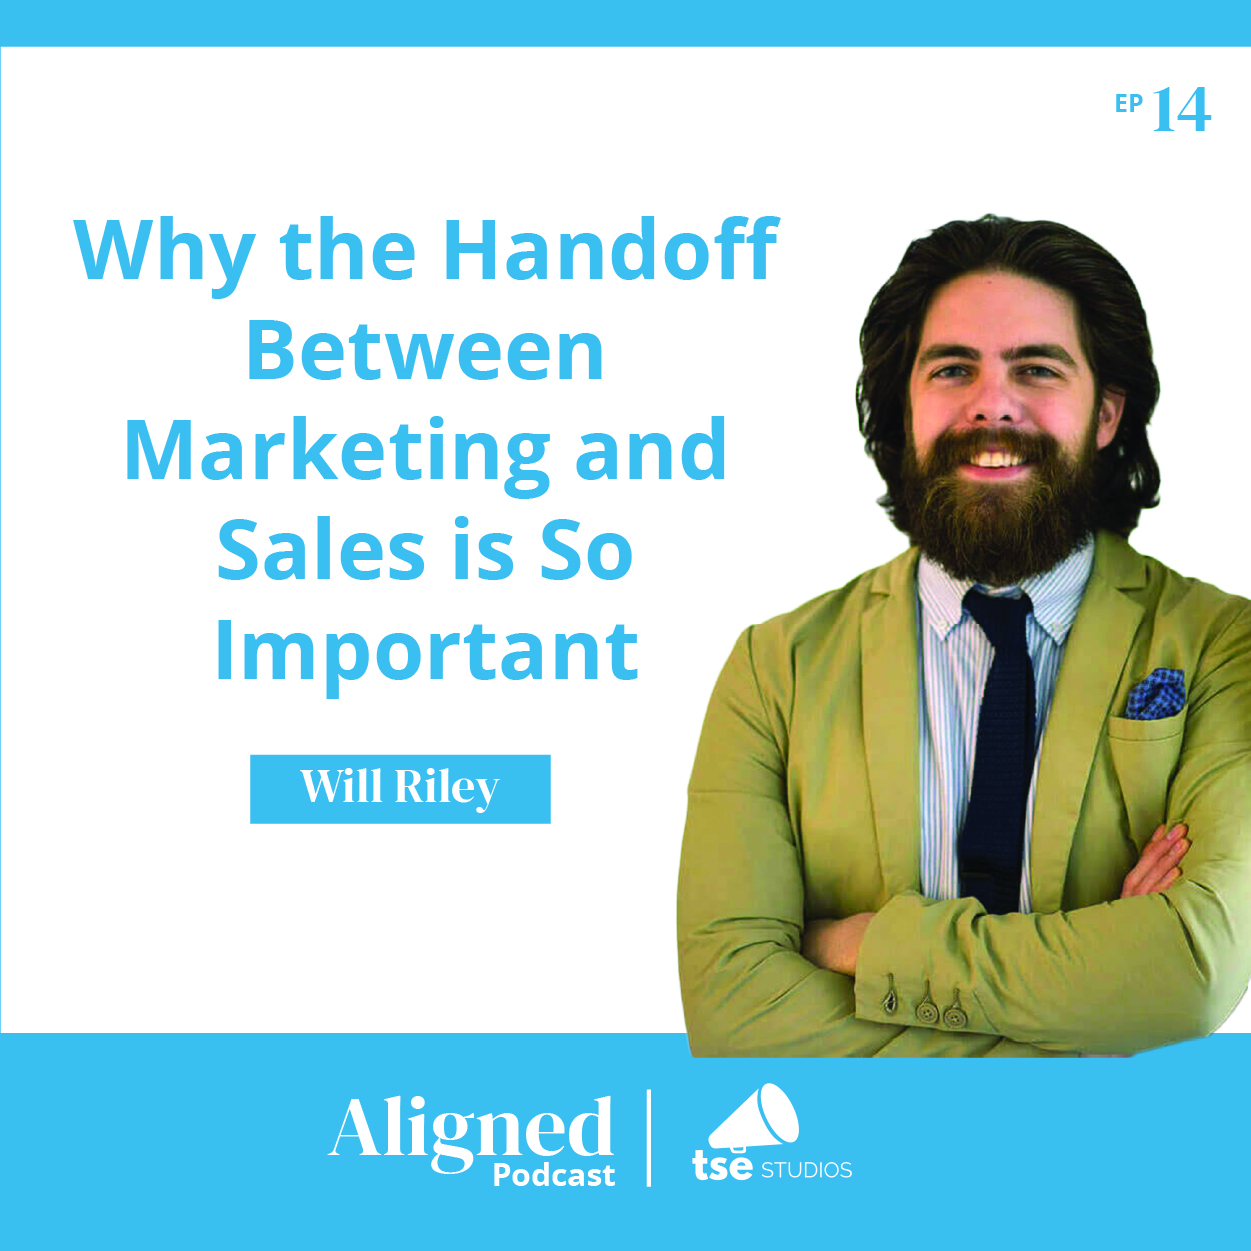 Why the Handoff Between Marketing and Sales is So Important